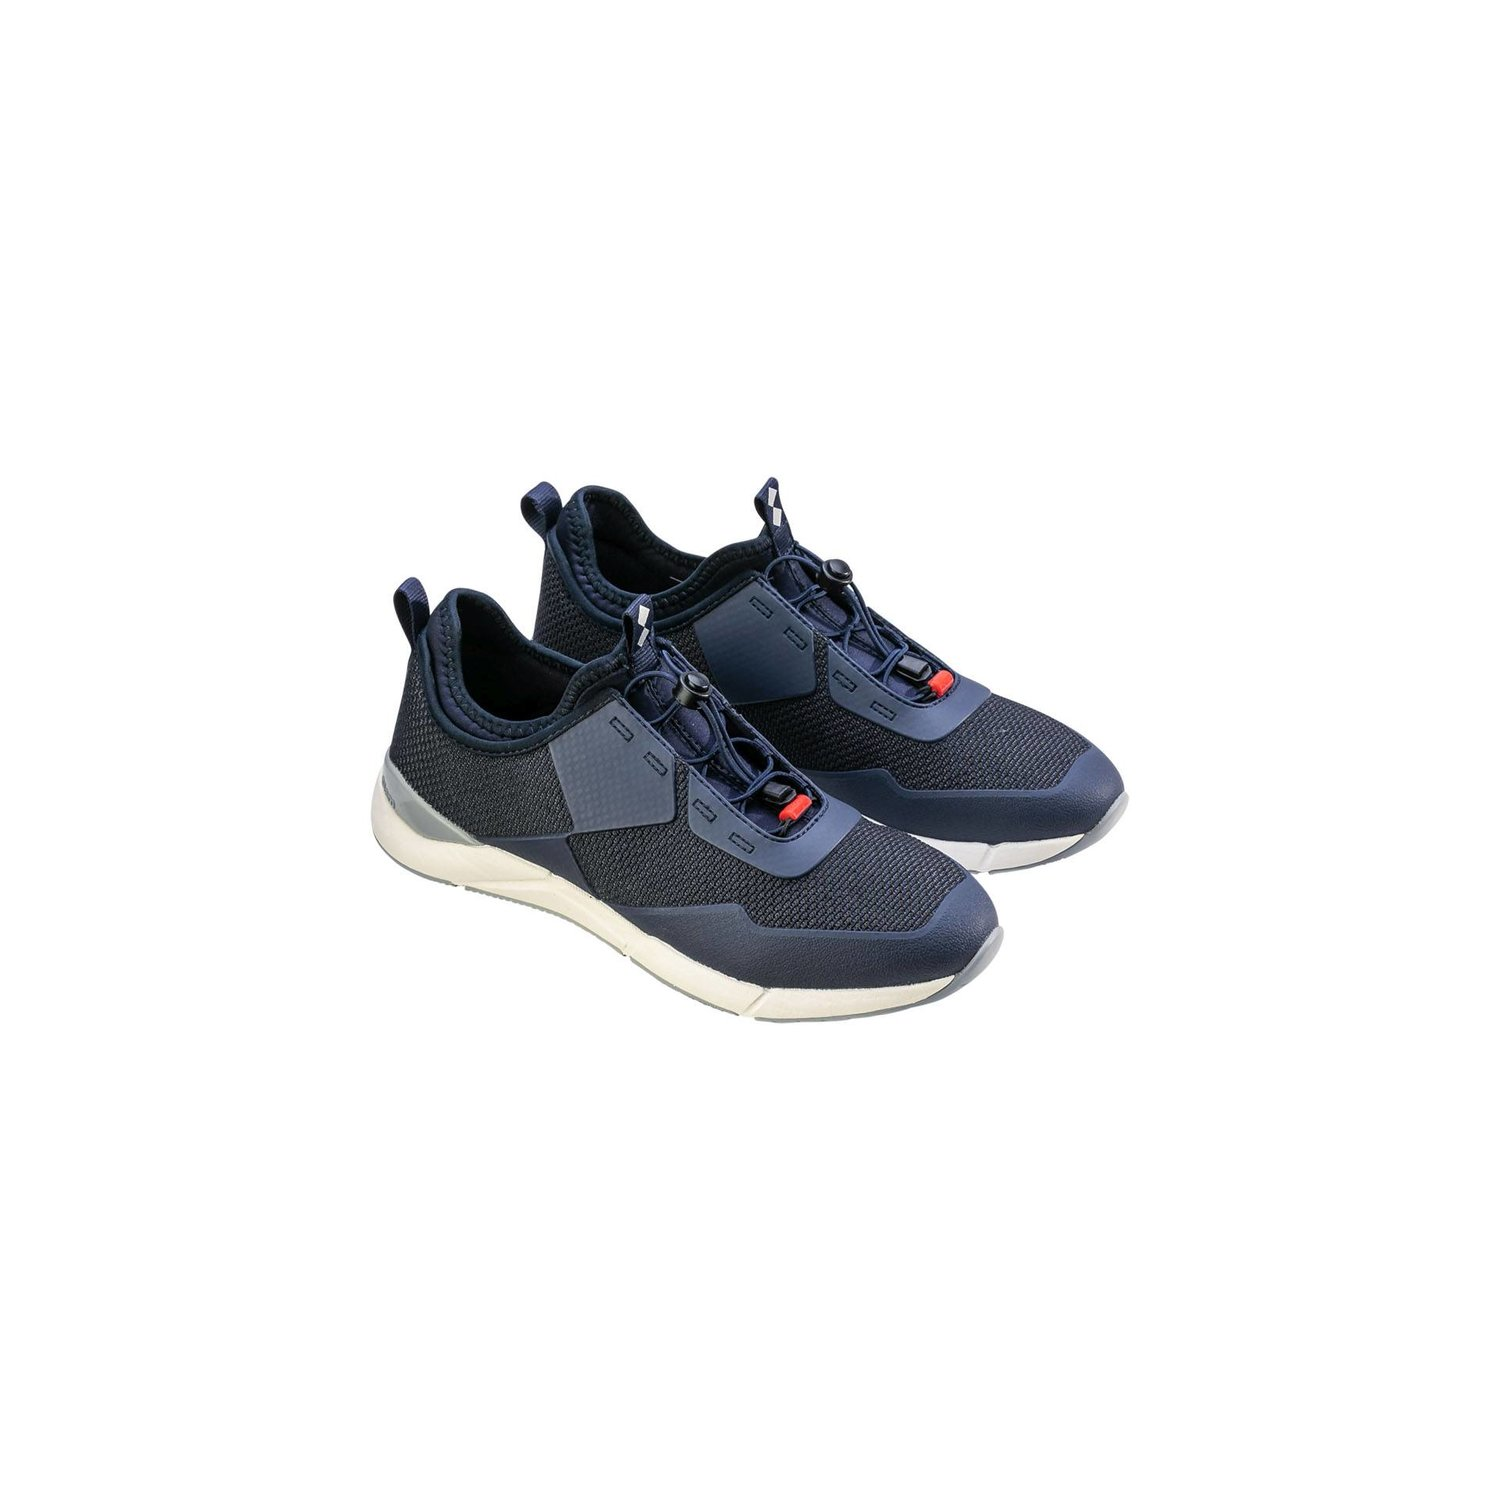 Win-D Technical Shoe - Marinenblau